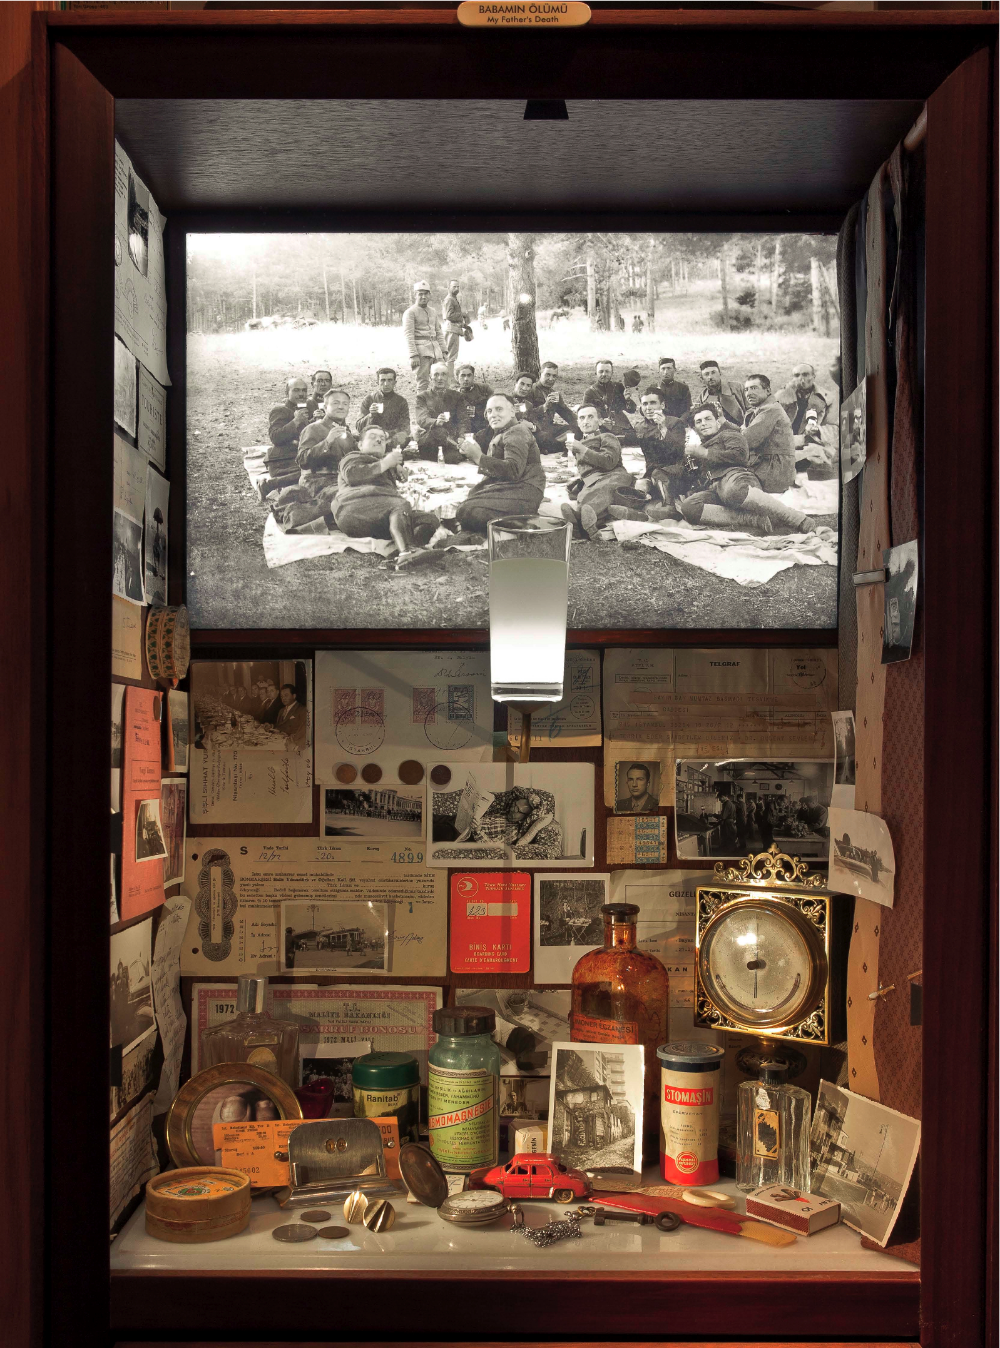 My Father's Death, an example of a vitrine in the Museums of Innocence exhibition at Somerset House